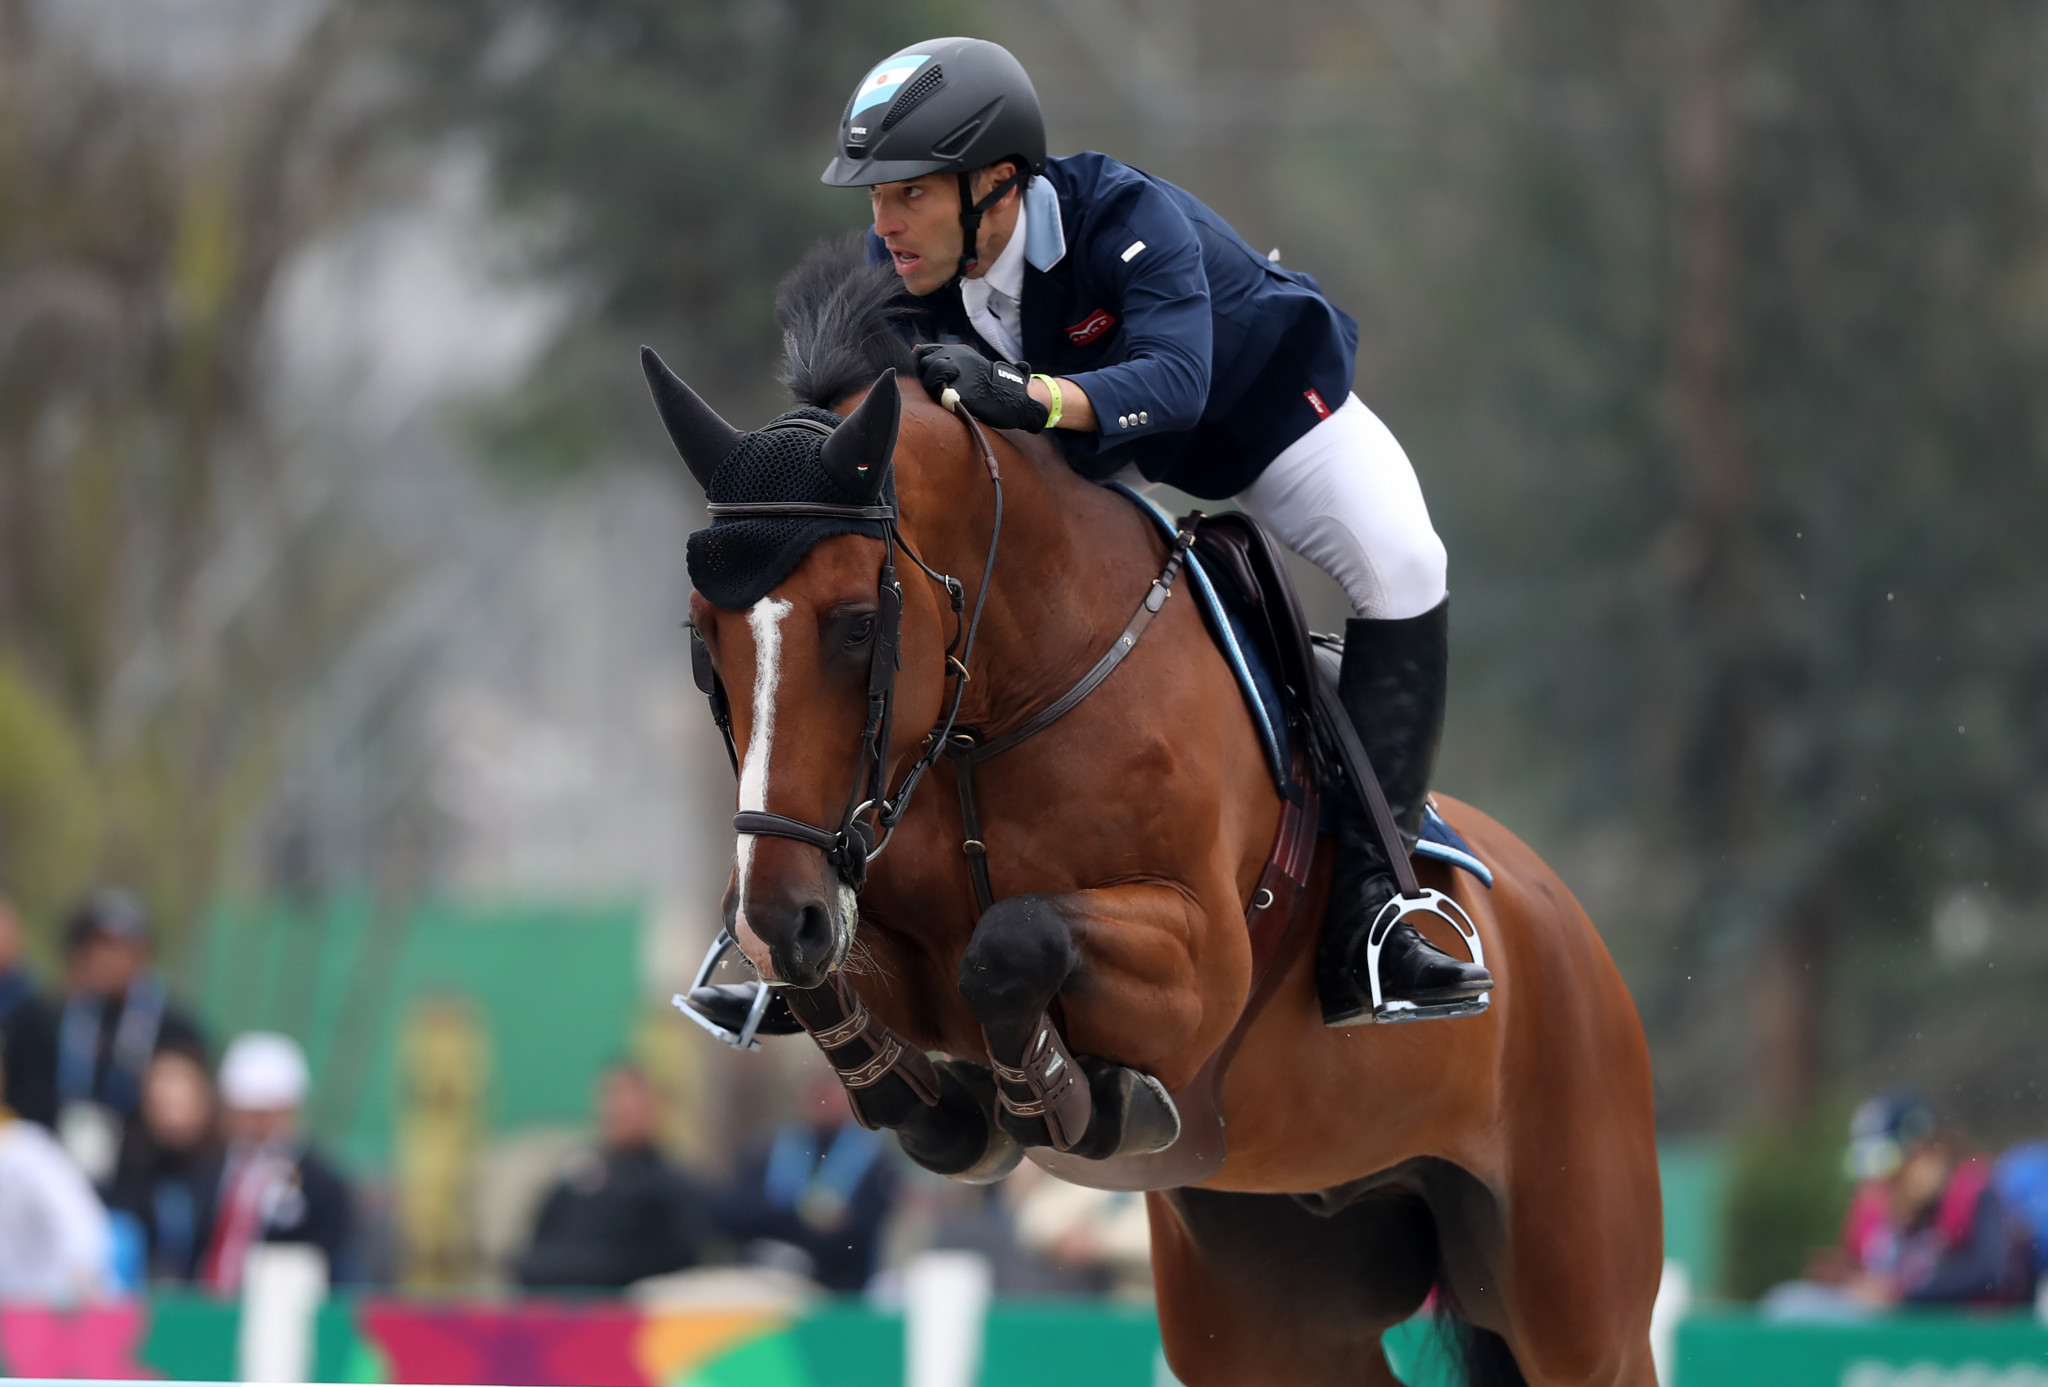 The ruling confirms Argentina's place in the team jumping event at Tokyo 2020 ©Getty Images